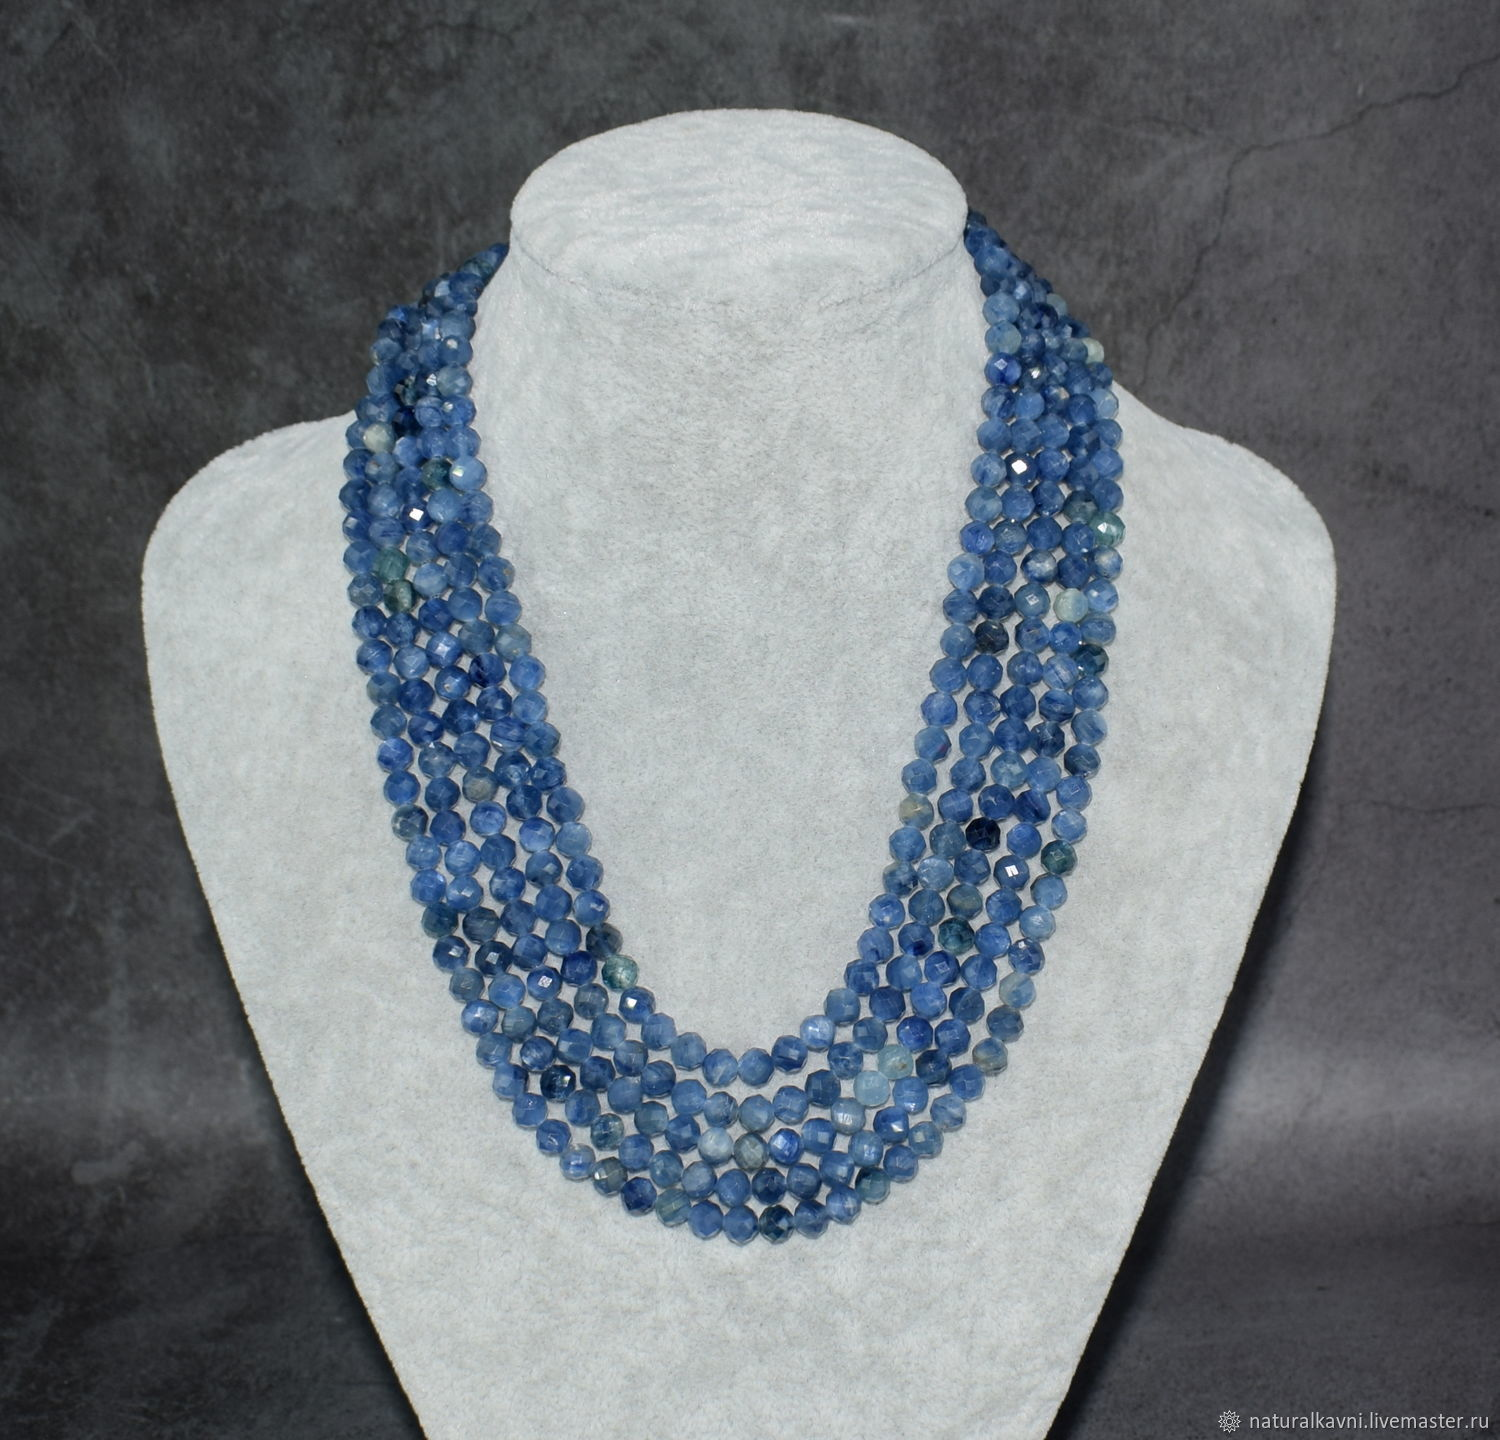 Natural Kyanite Beads with Cut, Beads2, Moscow,  Фото №1